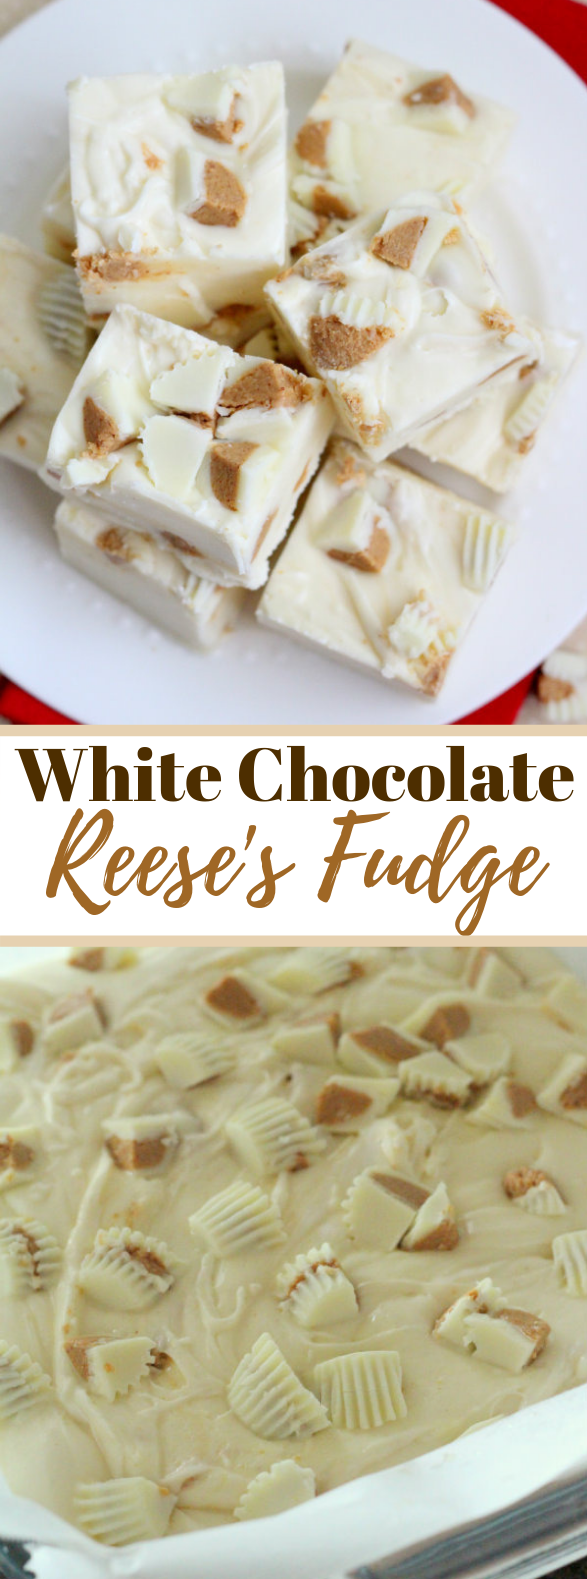 WHITE CHOCOLATE REESES FUDGE #dessert #candy